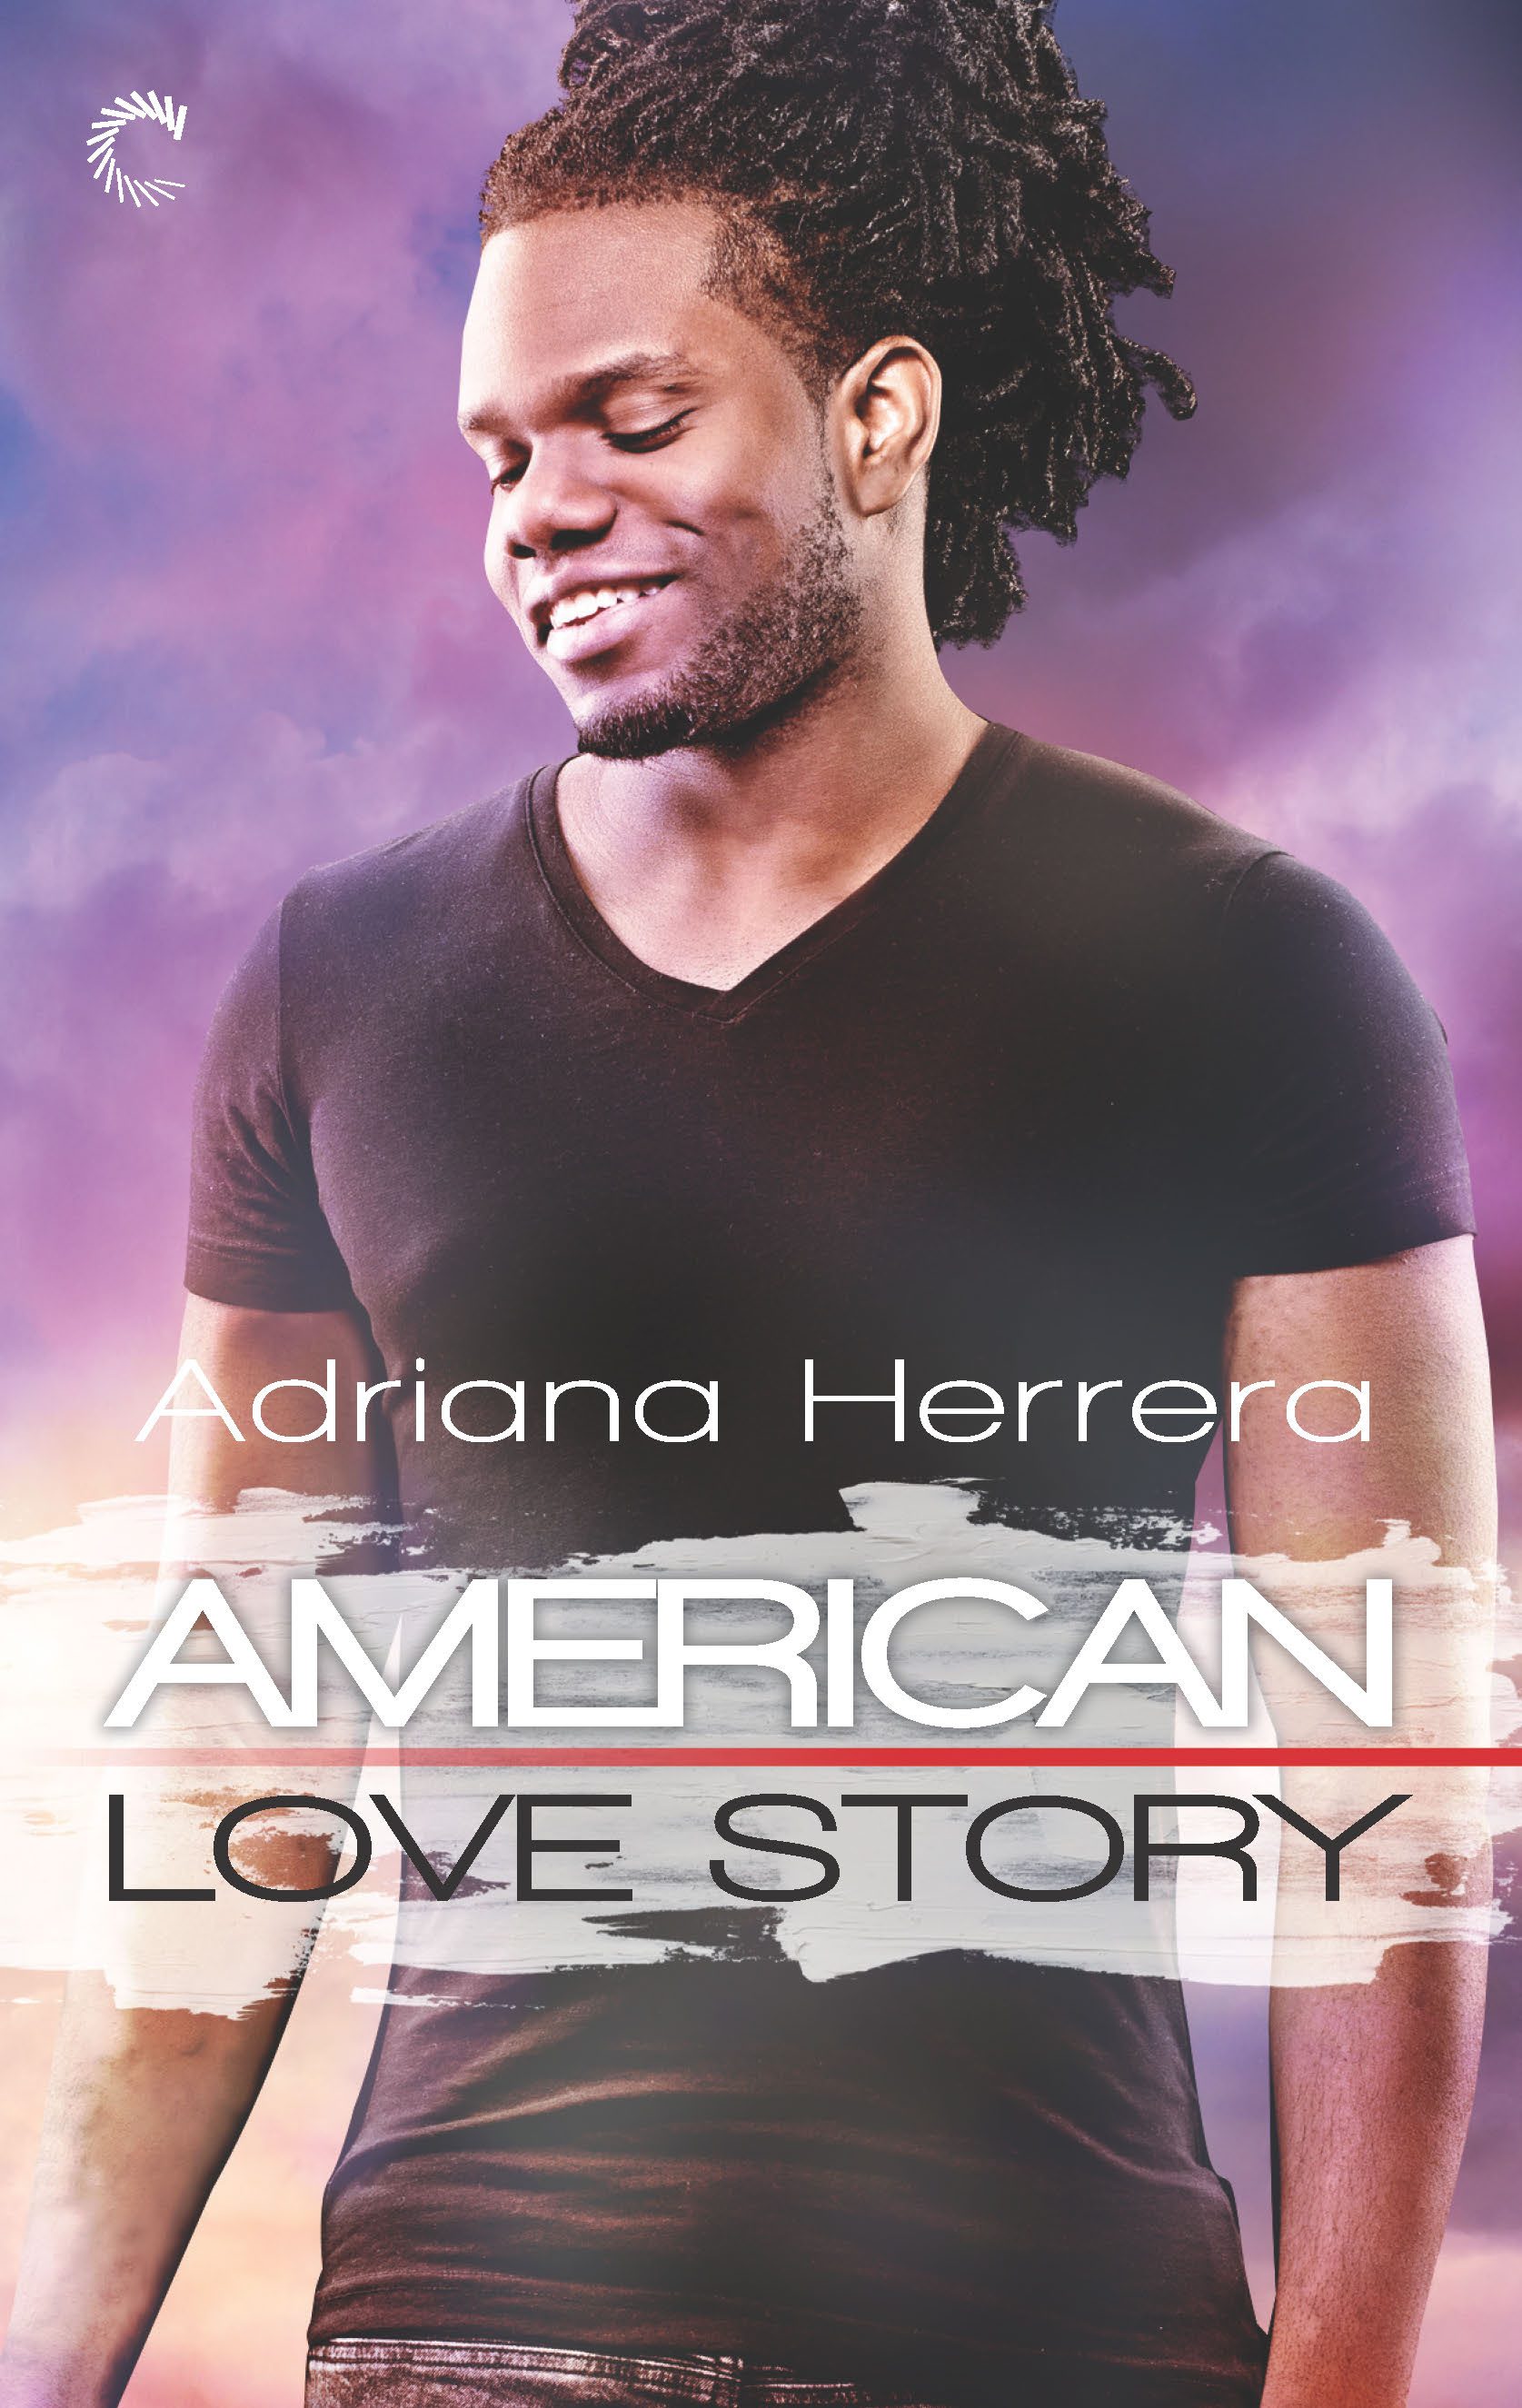 Interview: American Love Story by Adriana Herrera with Heidi Cullinan